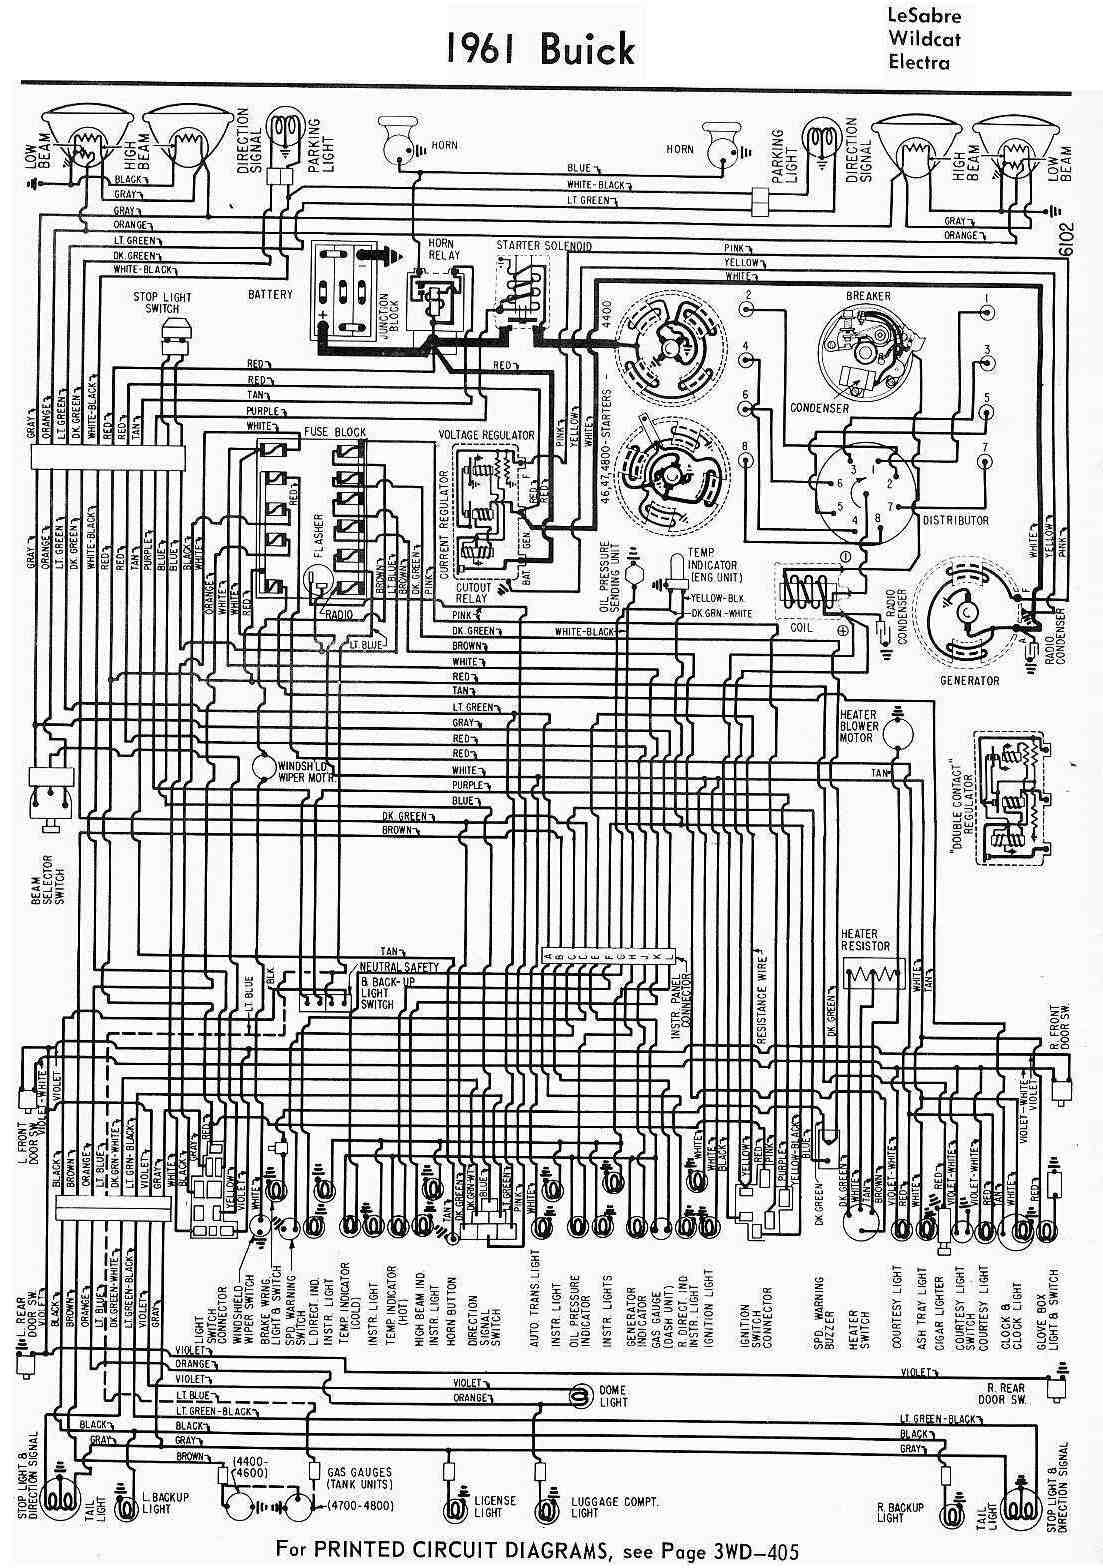 all about wiring diagrams 1961 buick lesabre wildcat and electra wiring diagram